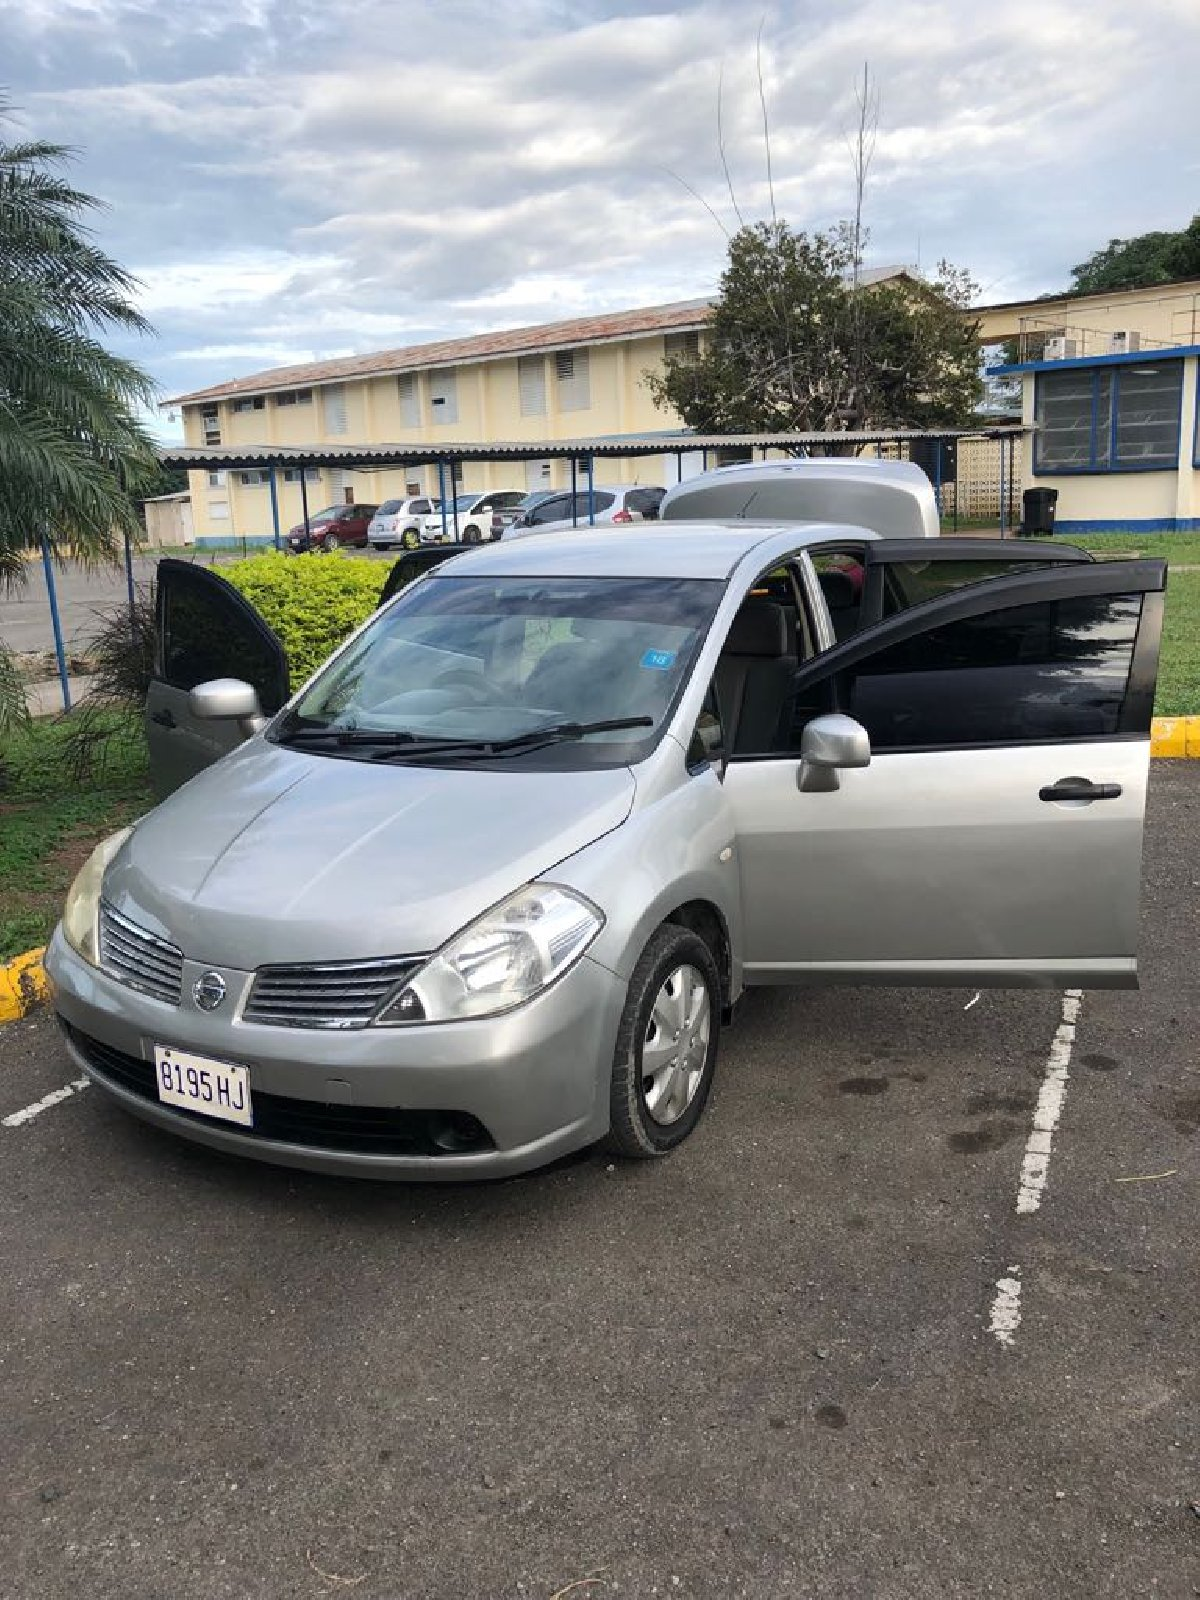 2007 nissan tiida for sale in half way tree kingston st andrew for 700 000 cars. Black Bedroom Furniture Sets. Home Design Ideas